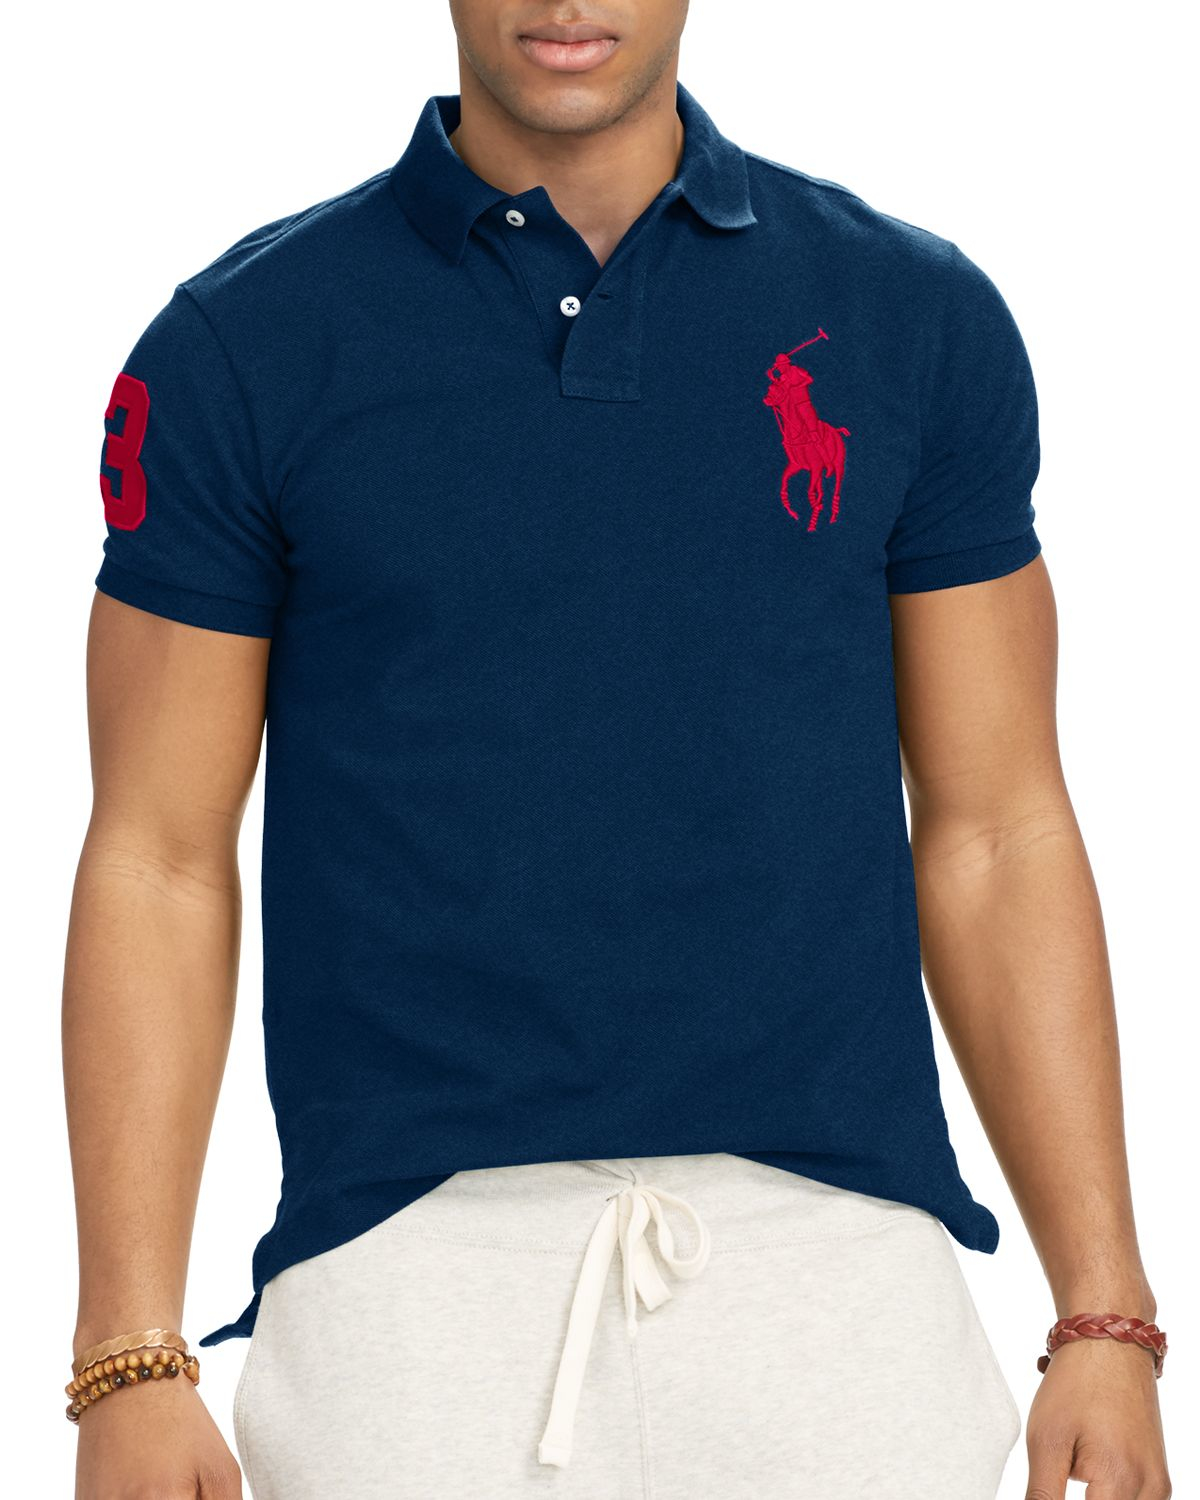 Ralph lauren Polo Custom-fit Big Pony Mesh Slim Fit Polo Shirt in Blue for